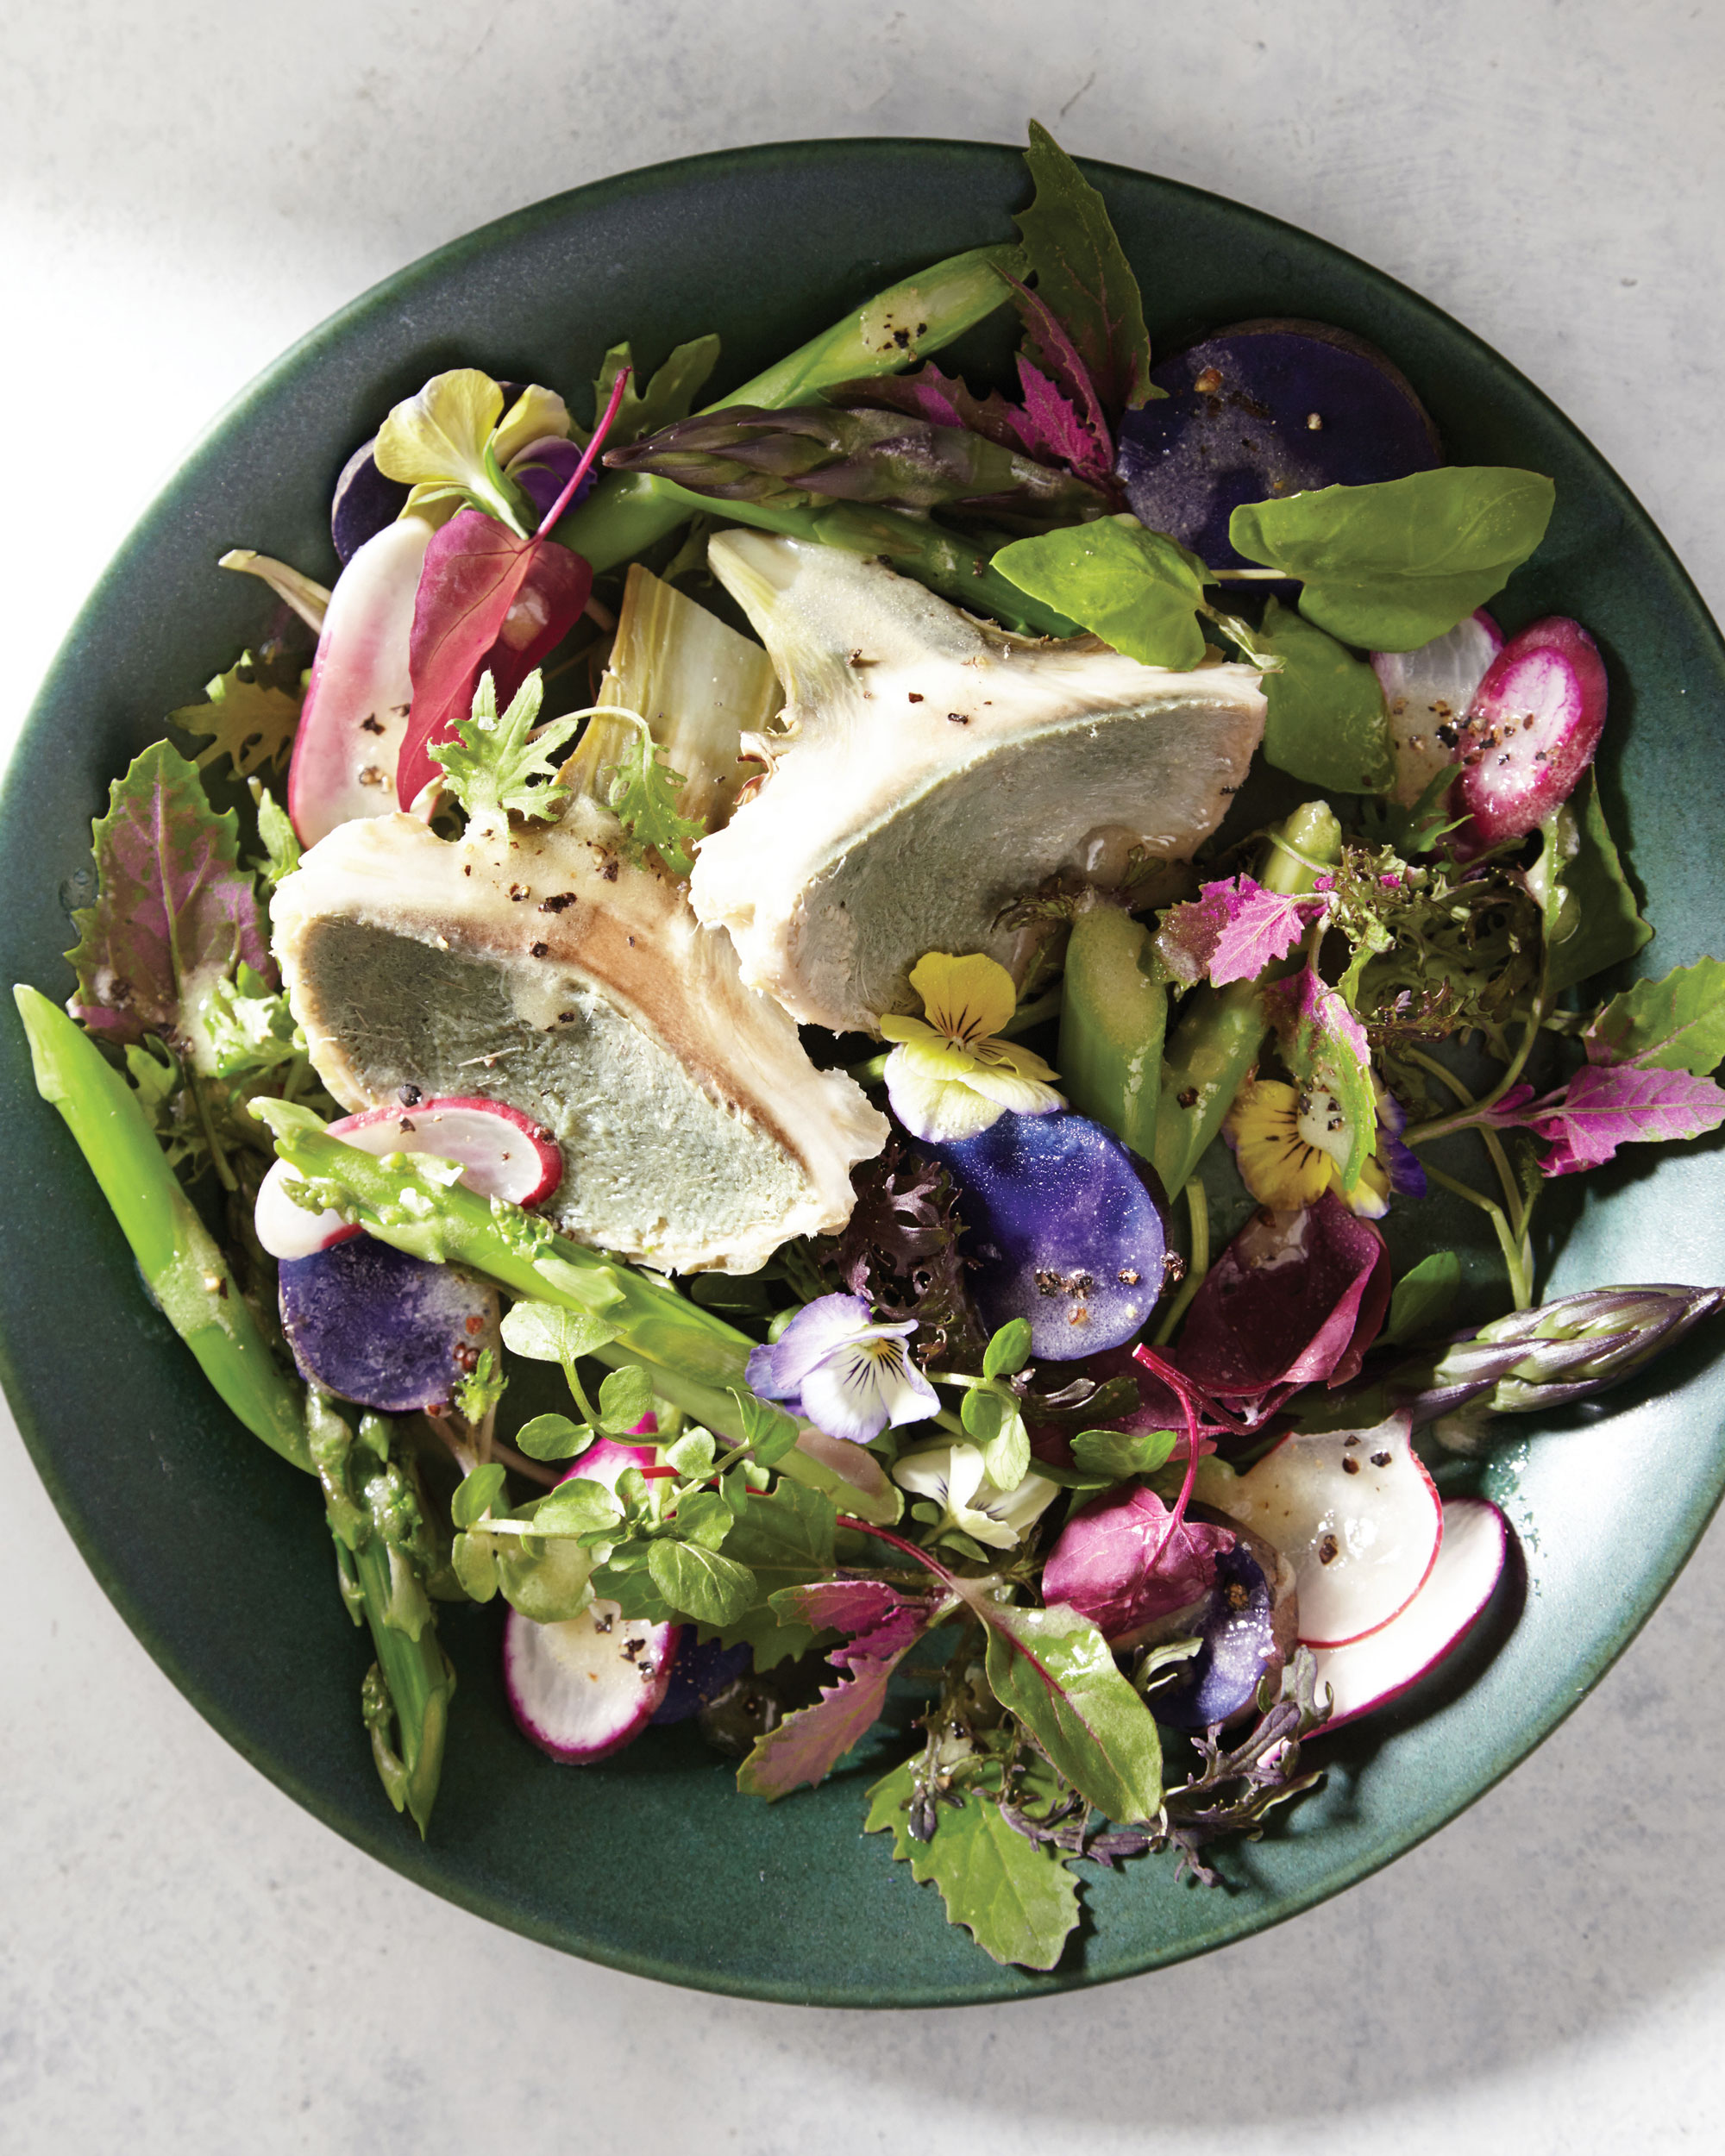 Steamed-Artichoke and Asparagus Salad